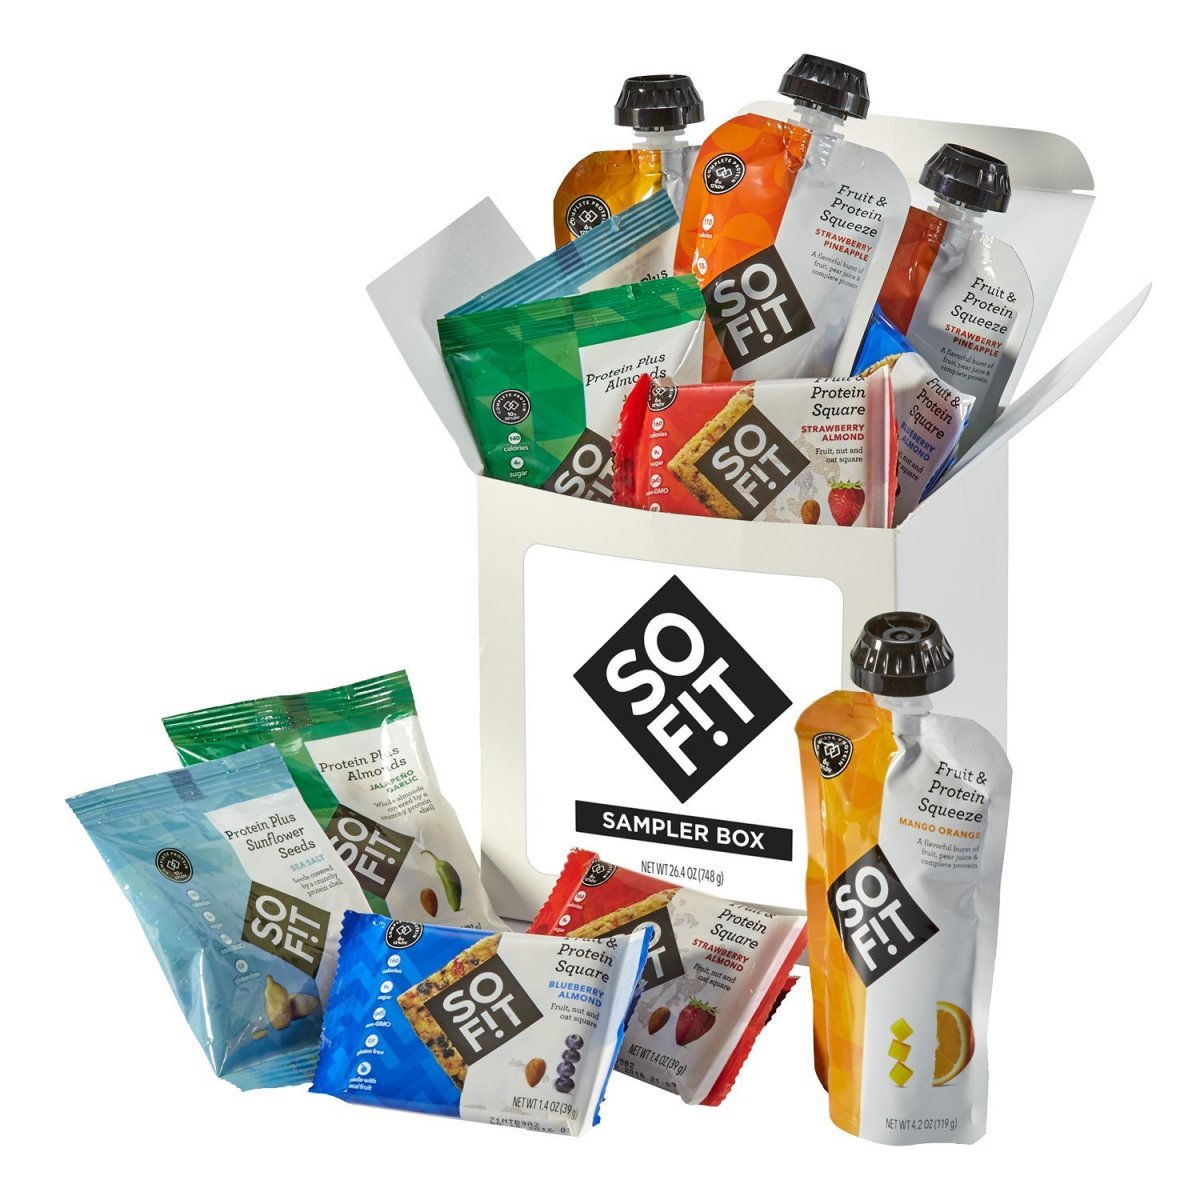 SoFit is Hershey's answer to nutritious snacks.